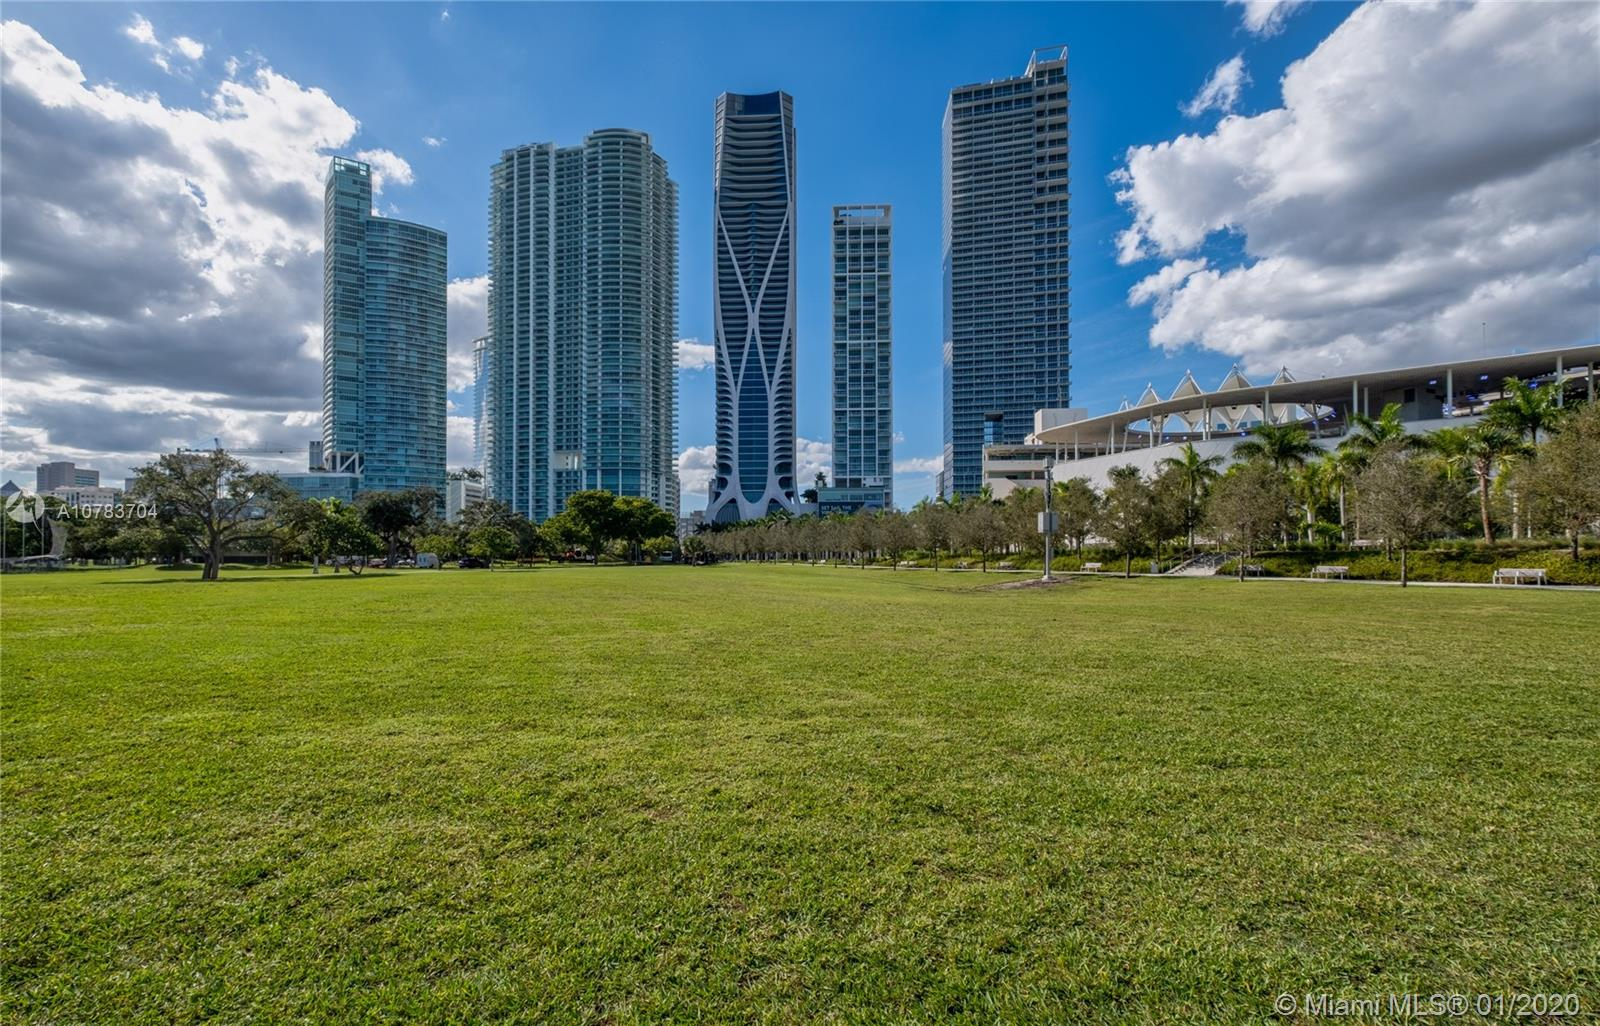 1000  Biscayne Blvd #3701 For Sale A10783704, FL